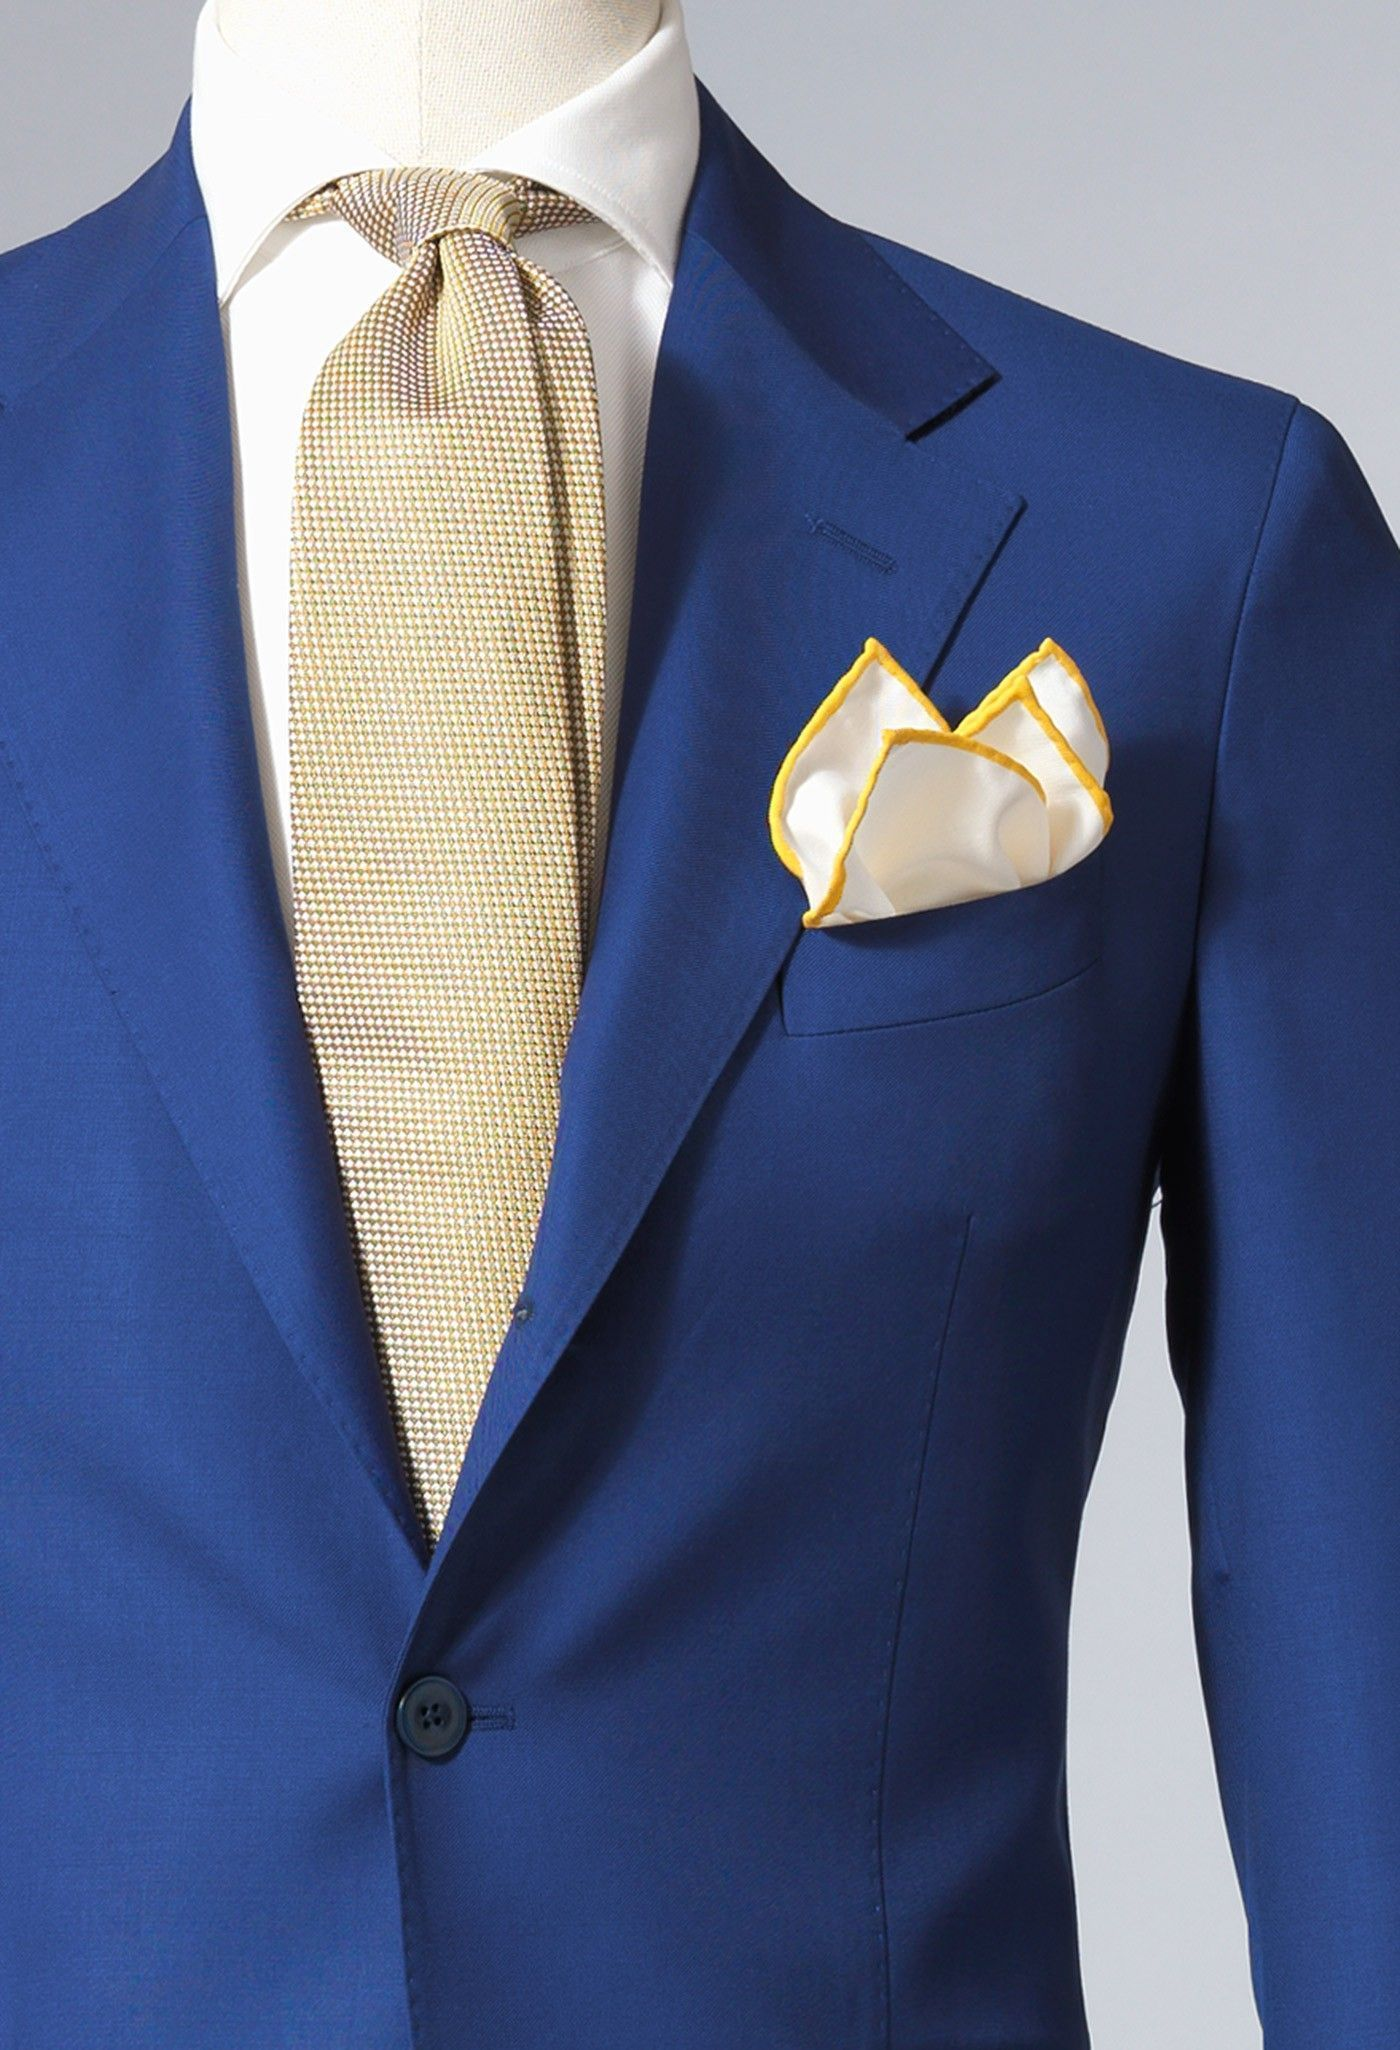 Electric blue suit menus suit on line men wedding suit